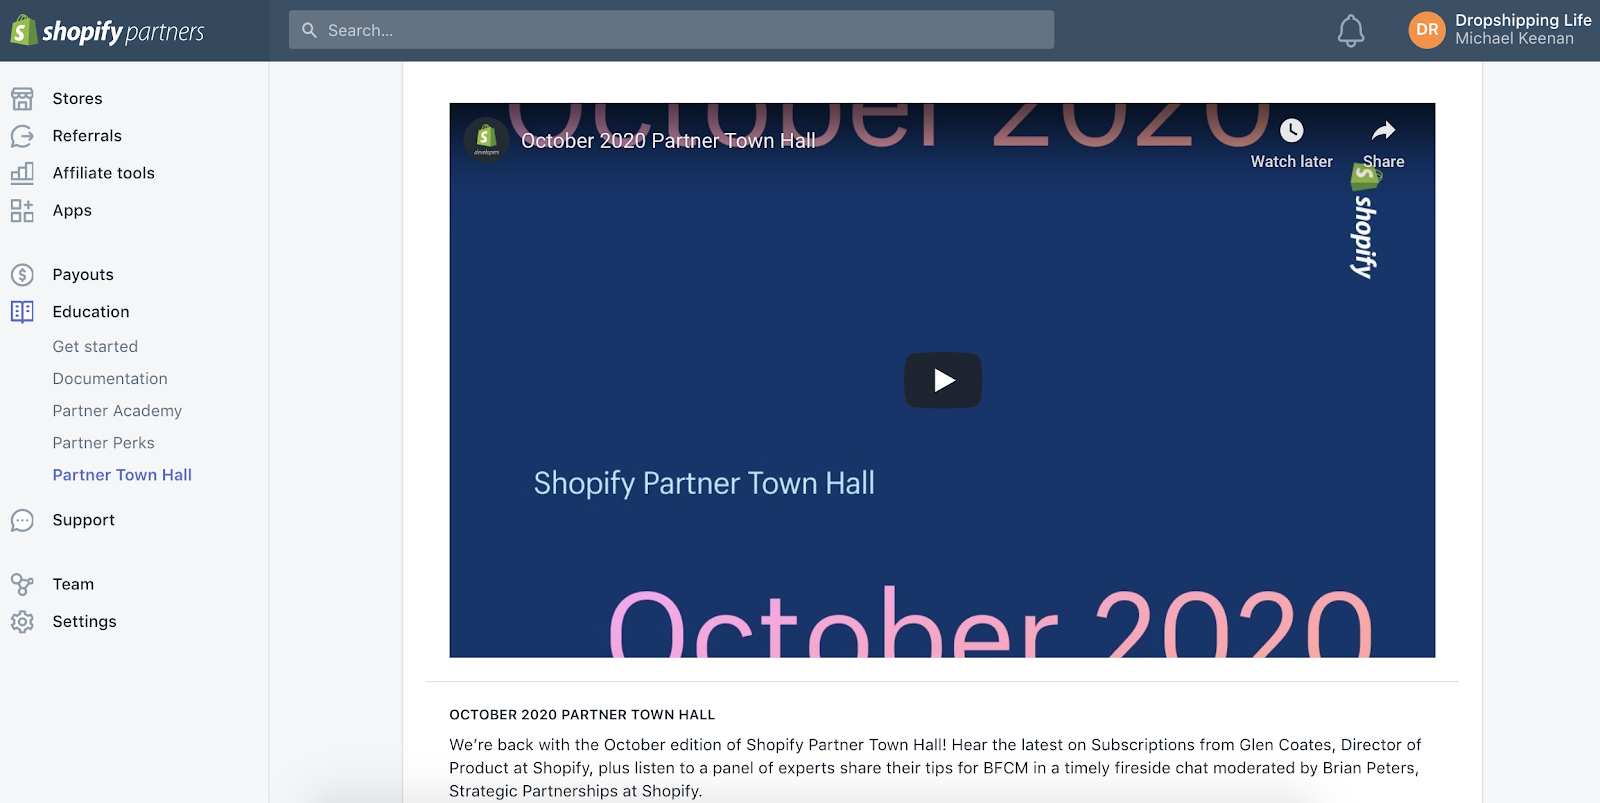 Shopify Partner Town Hall